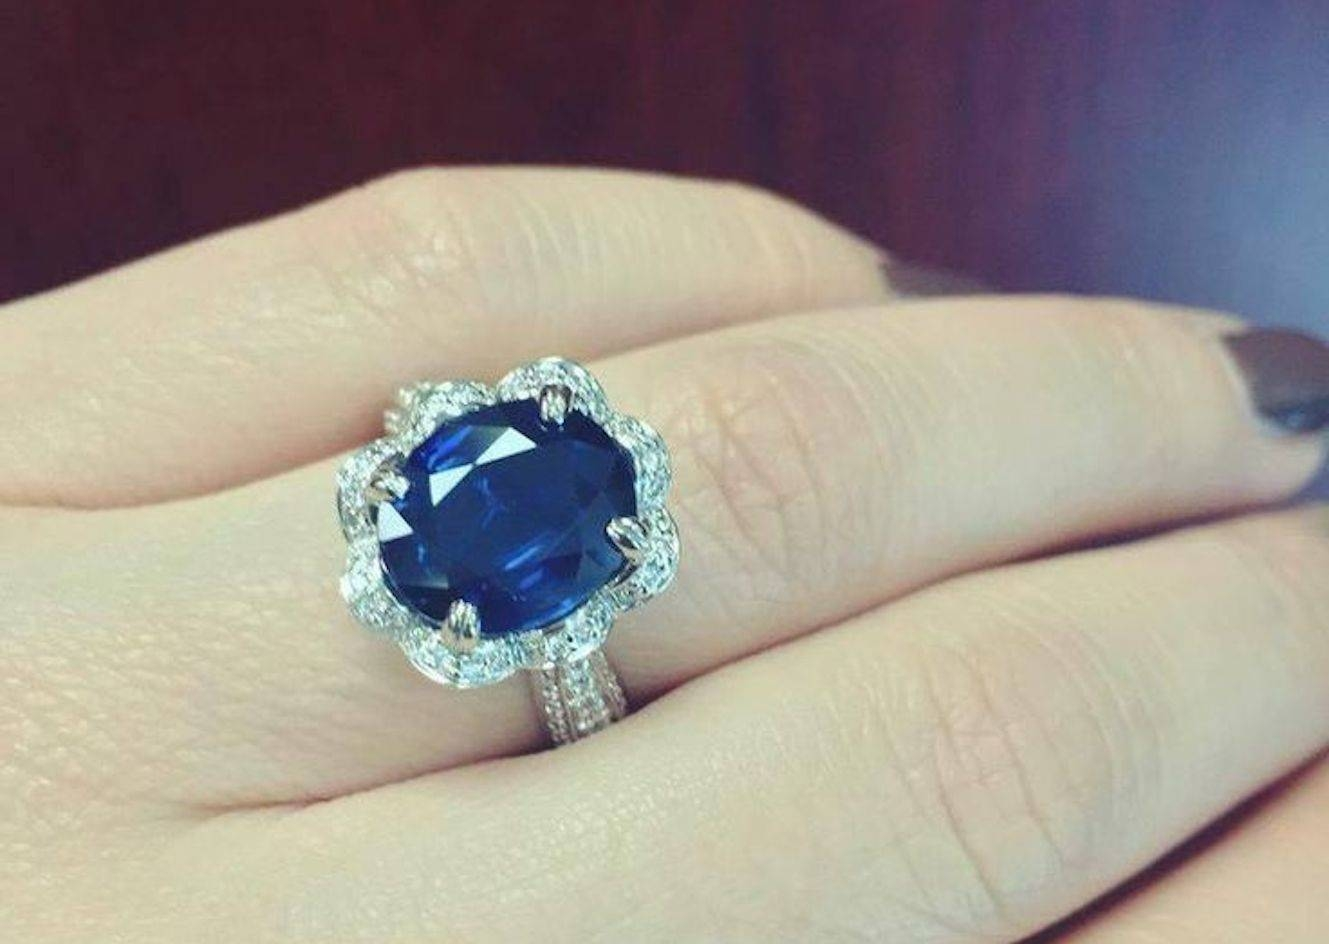 How To Choose A Sapphire Engagement Ring | Ritani Pertaining To Saphire Engagement Rings (View 4 of 15)